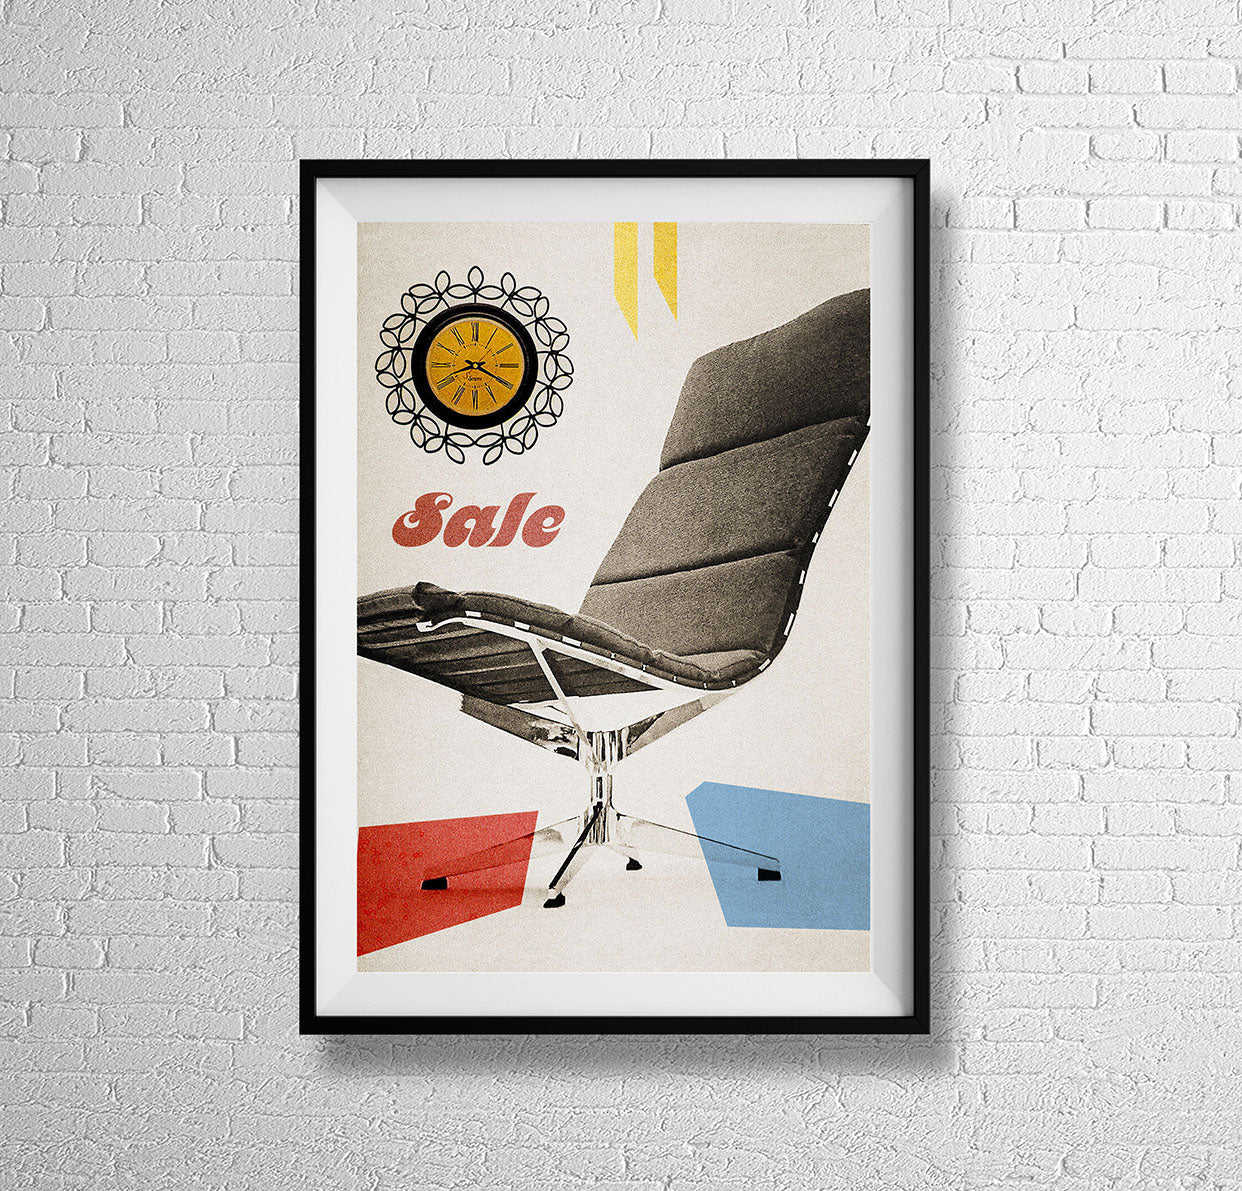 Mid century chair with wall clock -  MCM retro furniture seating advertising interior furnishing art illustration design gallery art print - 'Unframed'